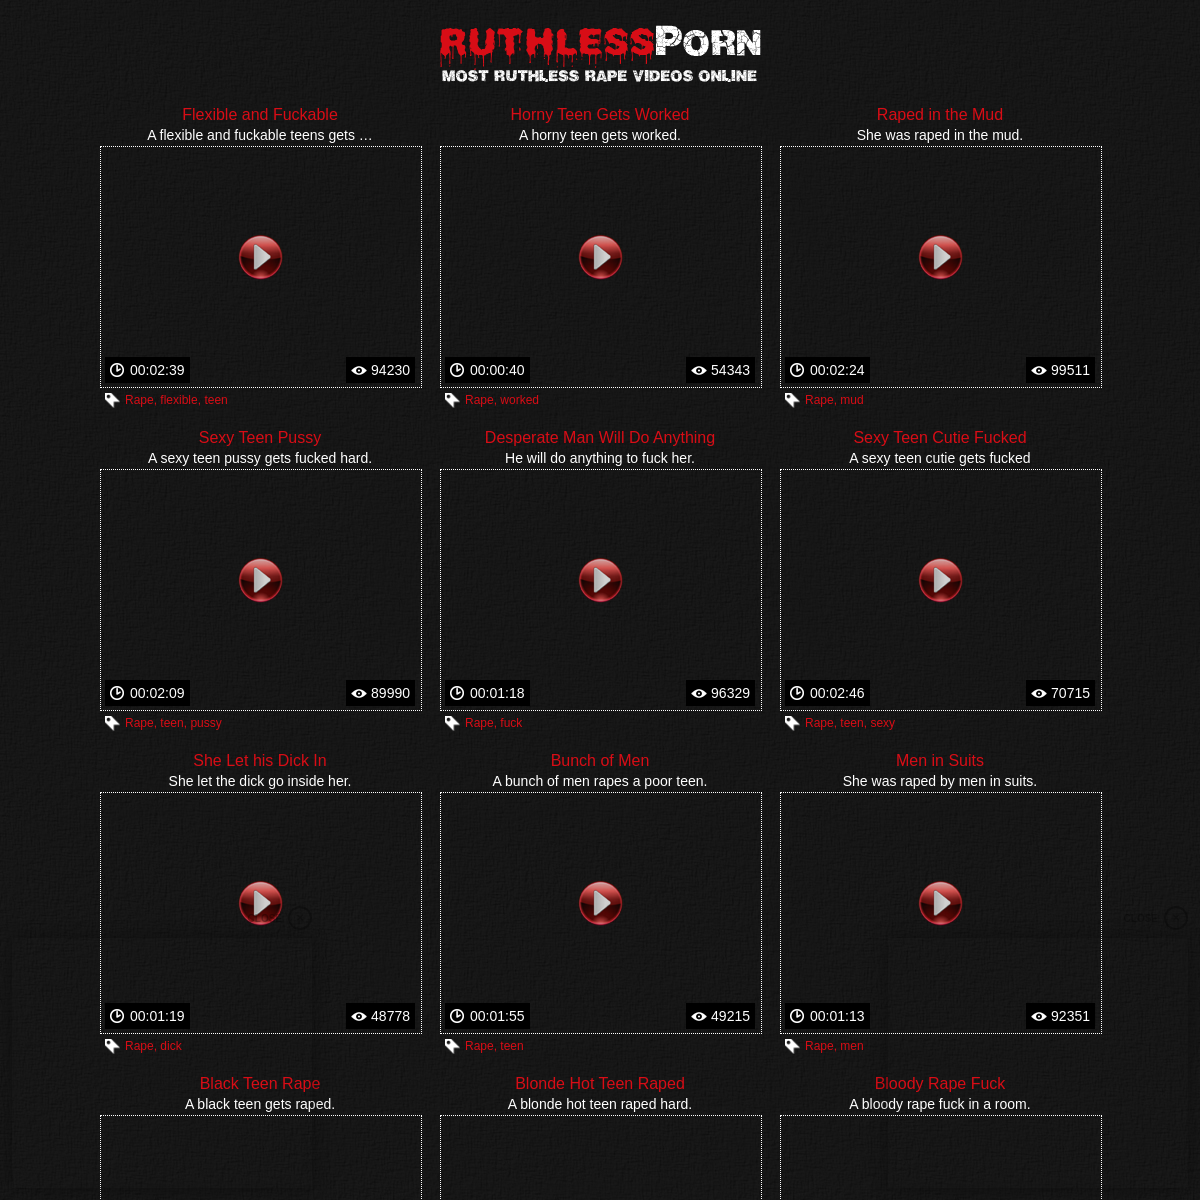 A complete backup of www.ruthlessporn.com